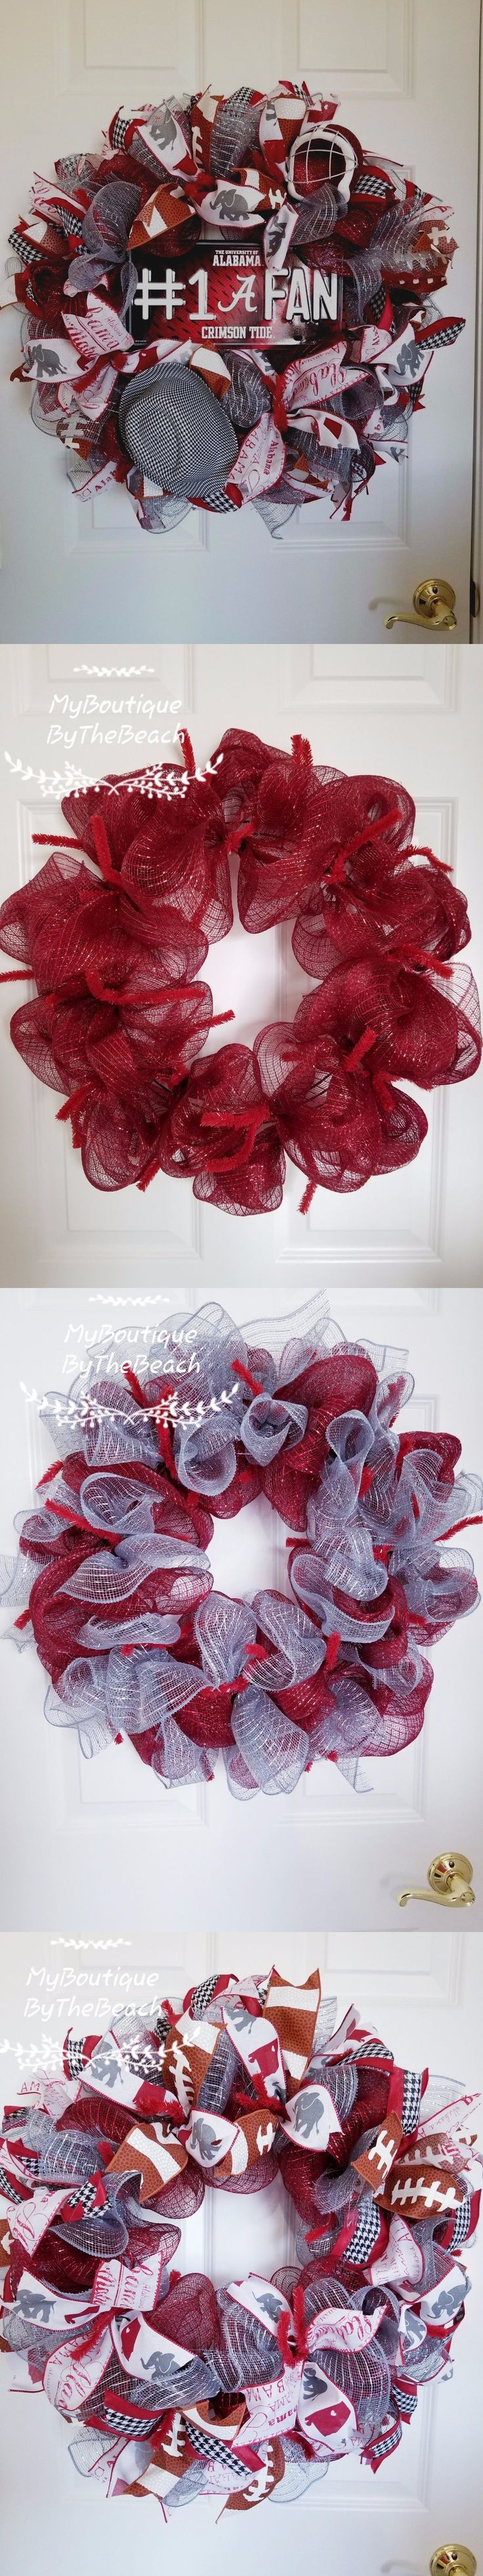 Door D cor 36020: Deco Mesh Wreath - Alabama Crimson Tide Mesh Wreath - Alabama Gift - Fall Wreath -> BUY IT NOW ONLY: $70 on eBay!